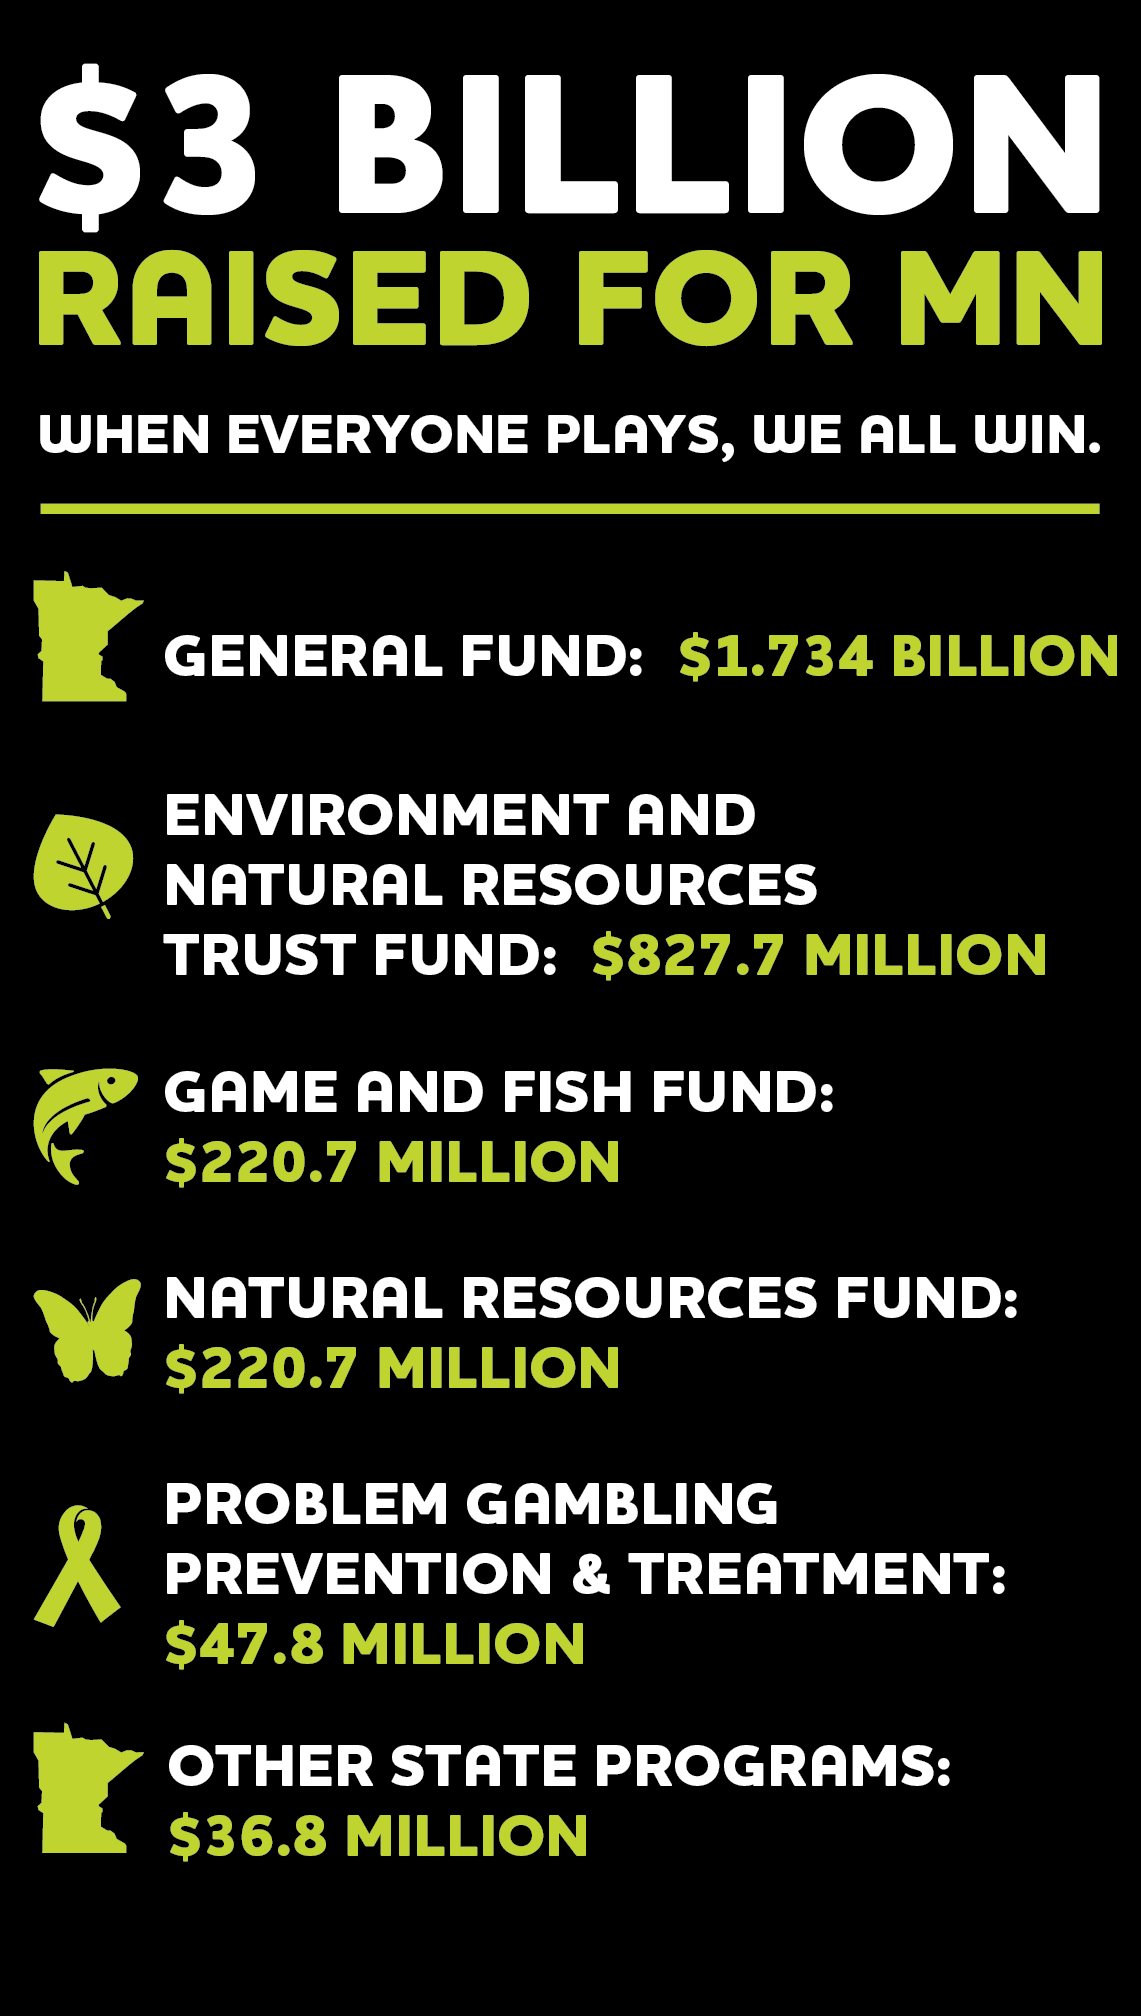 3 billion dollars raised for Minnesota. General Fund: $1.734, Environment & Natural Resources Trust Fund: $827.7 Million, Game & Fish Fund: $220.7 Million, Natural Resources Fund: $220.7 Million, Problem Gambling: $47.8 Million, Other: $36.8 Million